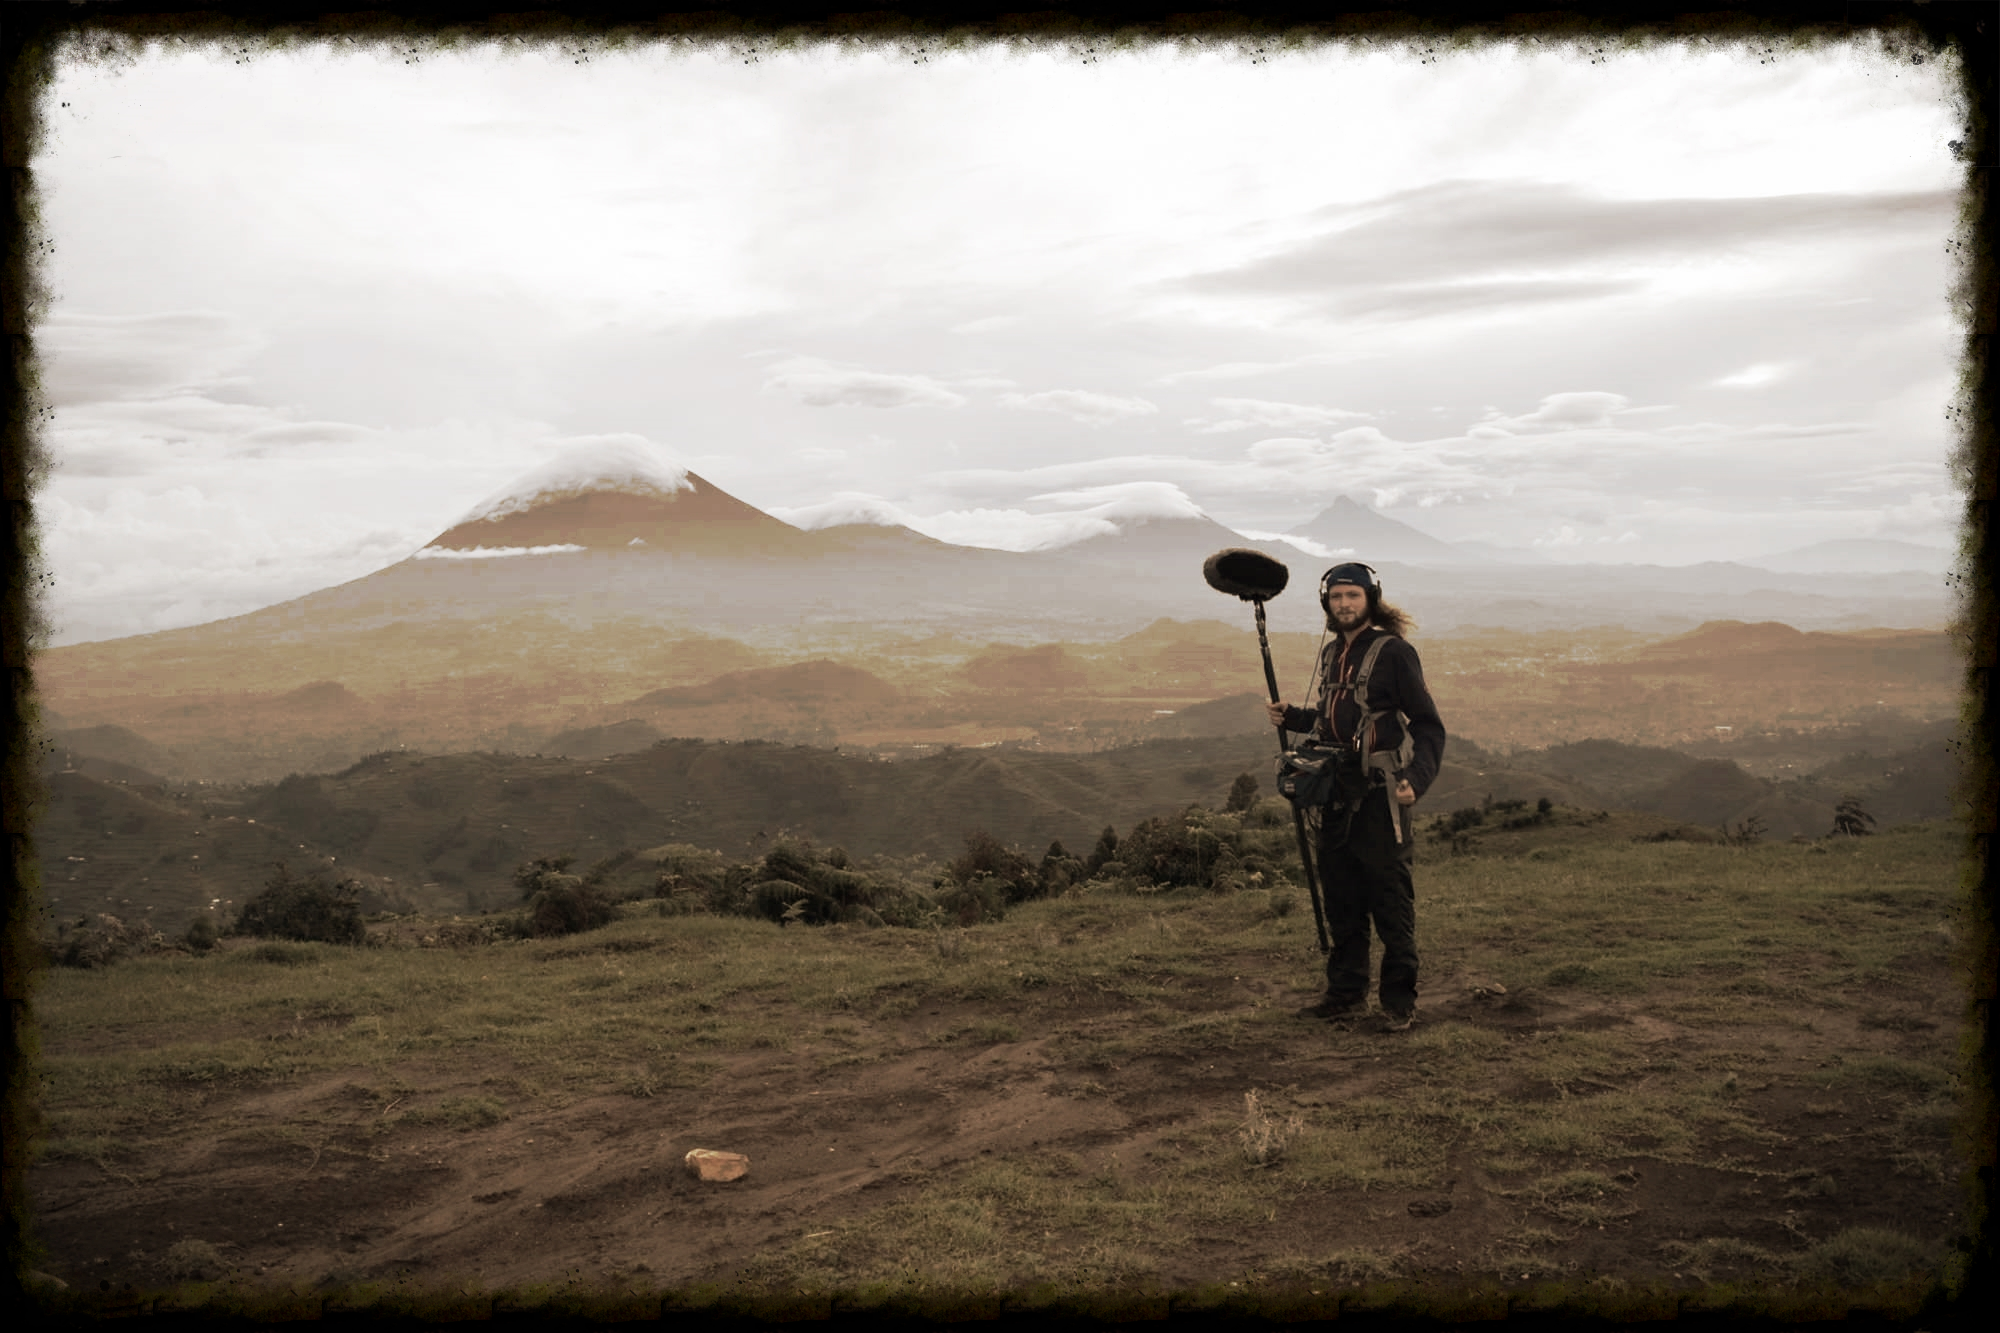 Location Sound Recording in the forests of Uganda.